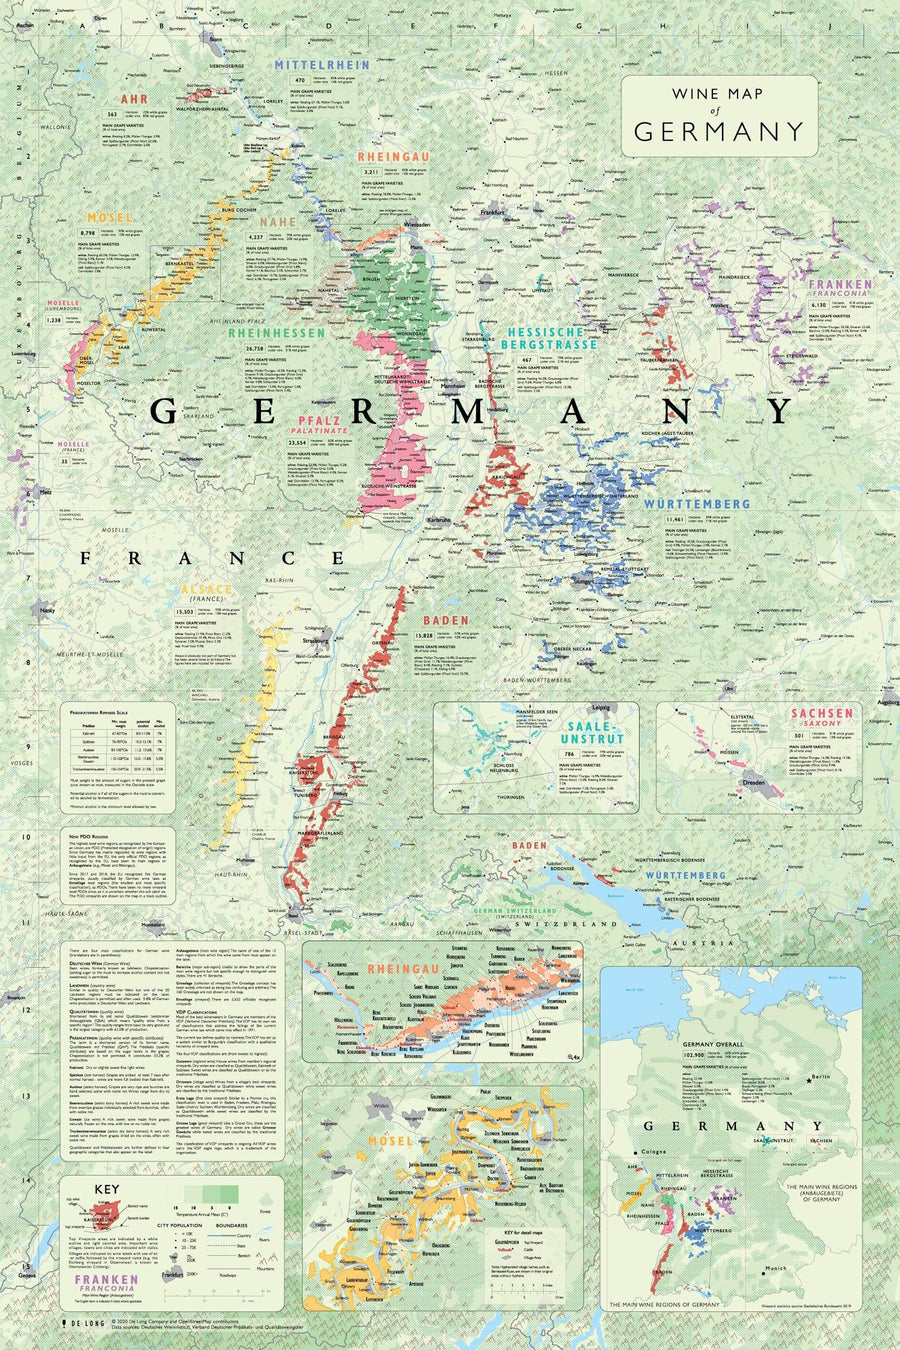 Wine Map of Germany Bookshelf Edition Map